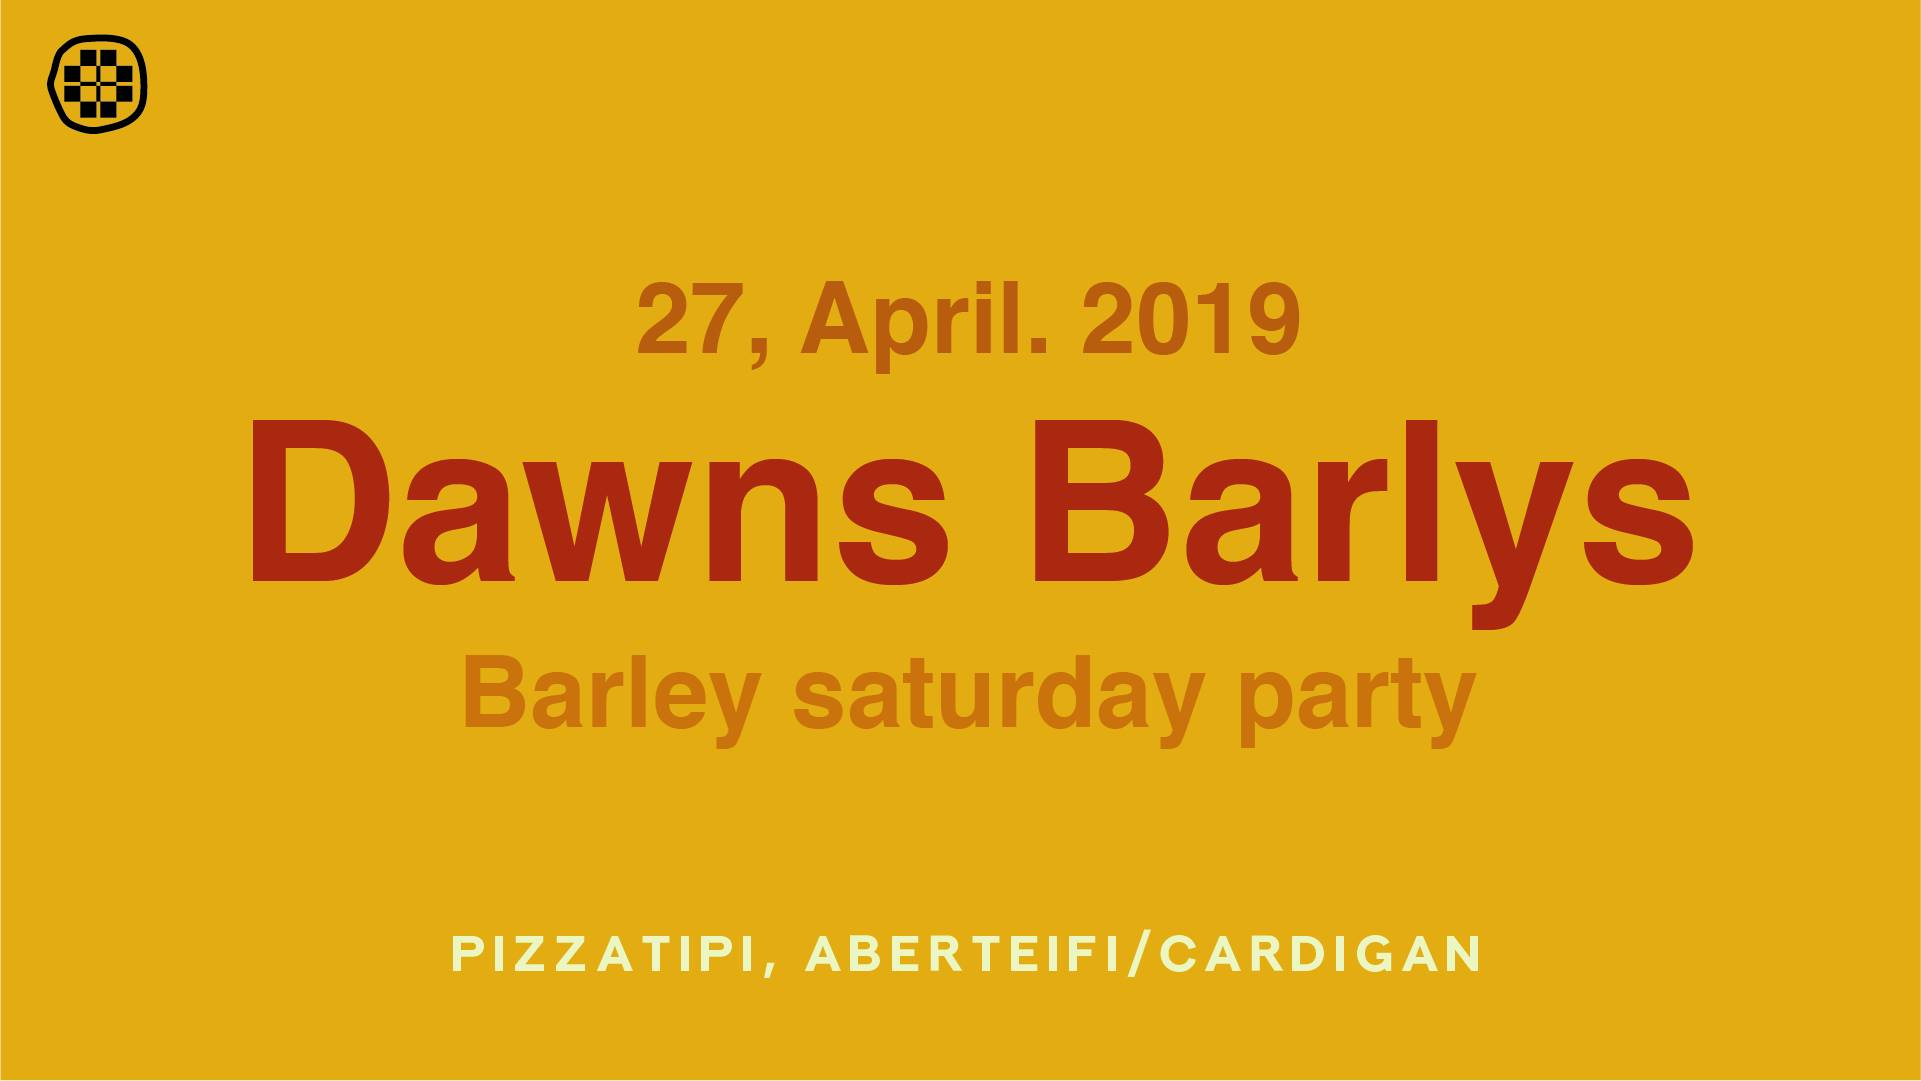 Barley Saturday Party